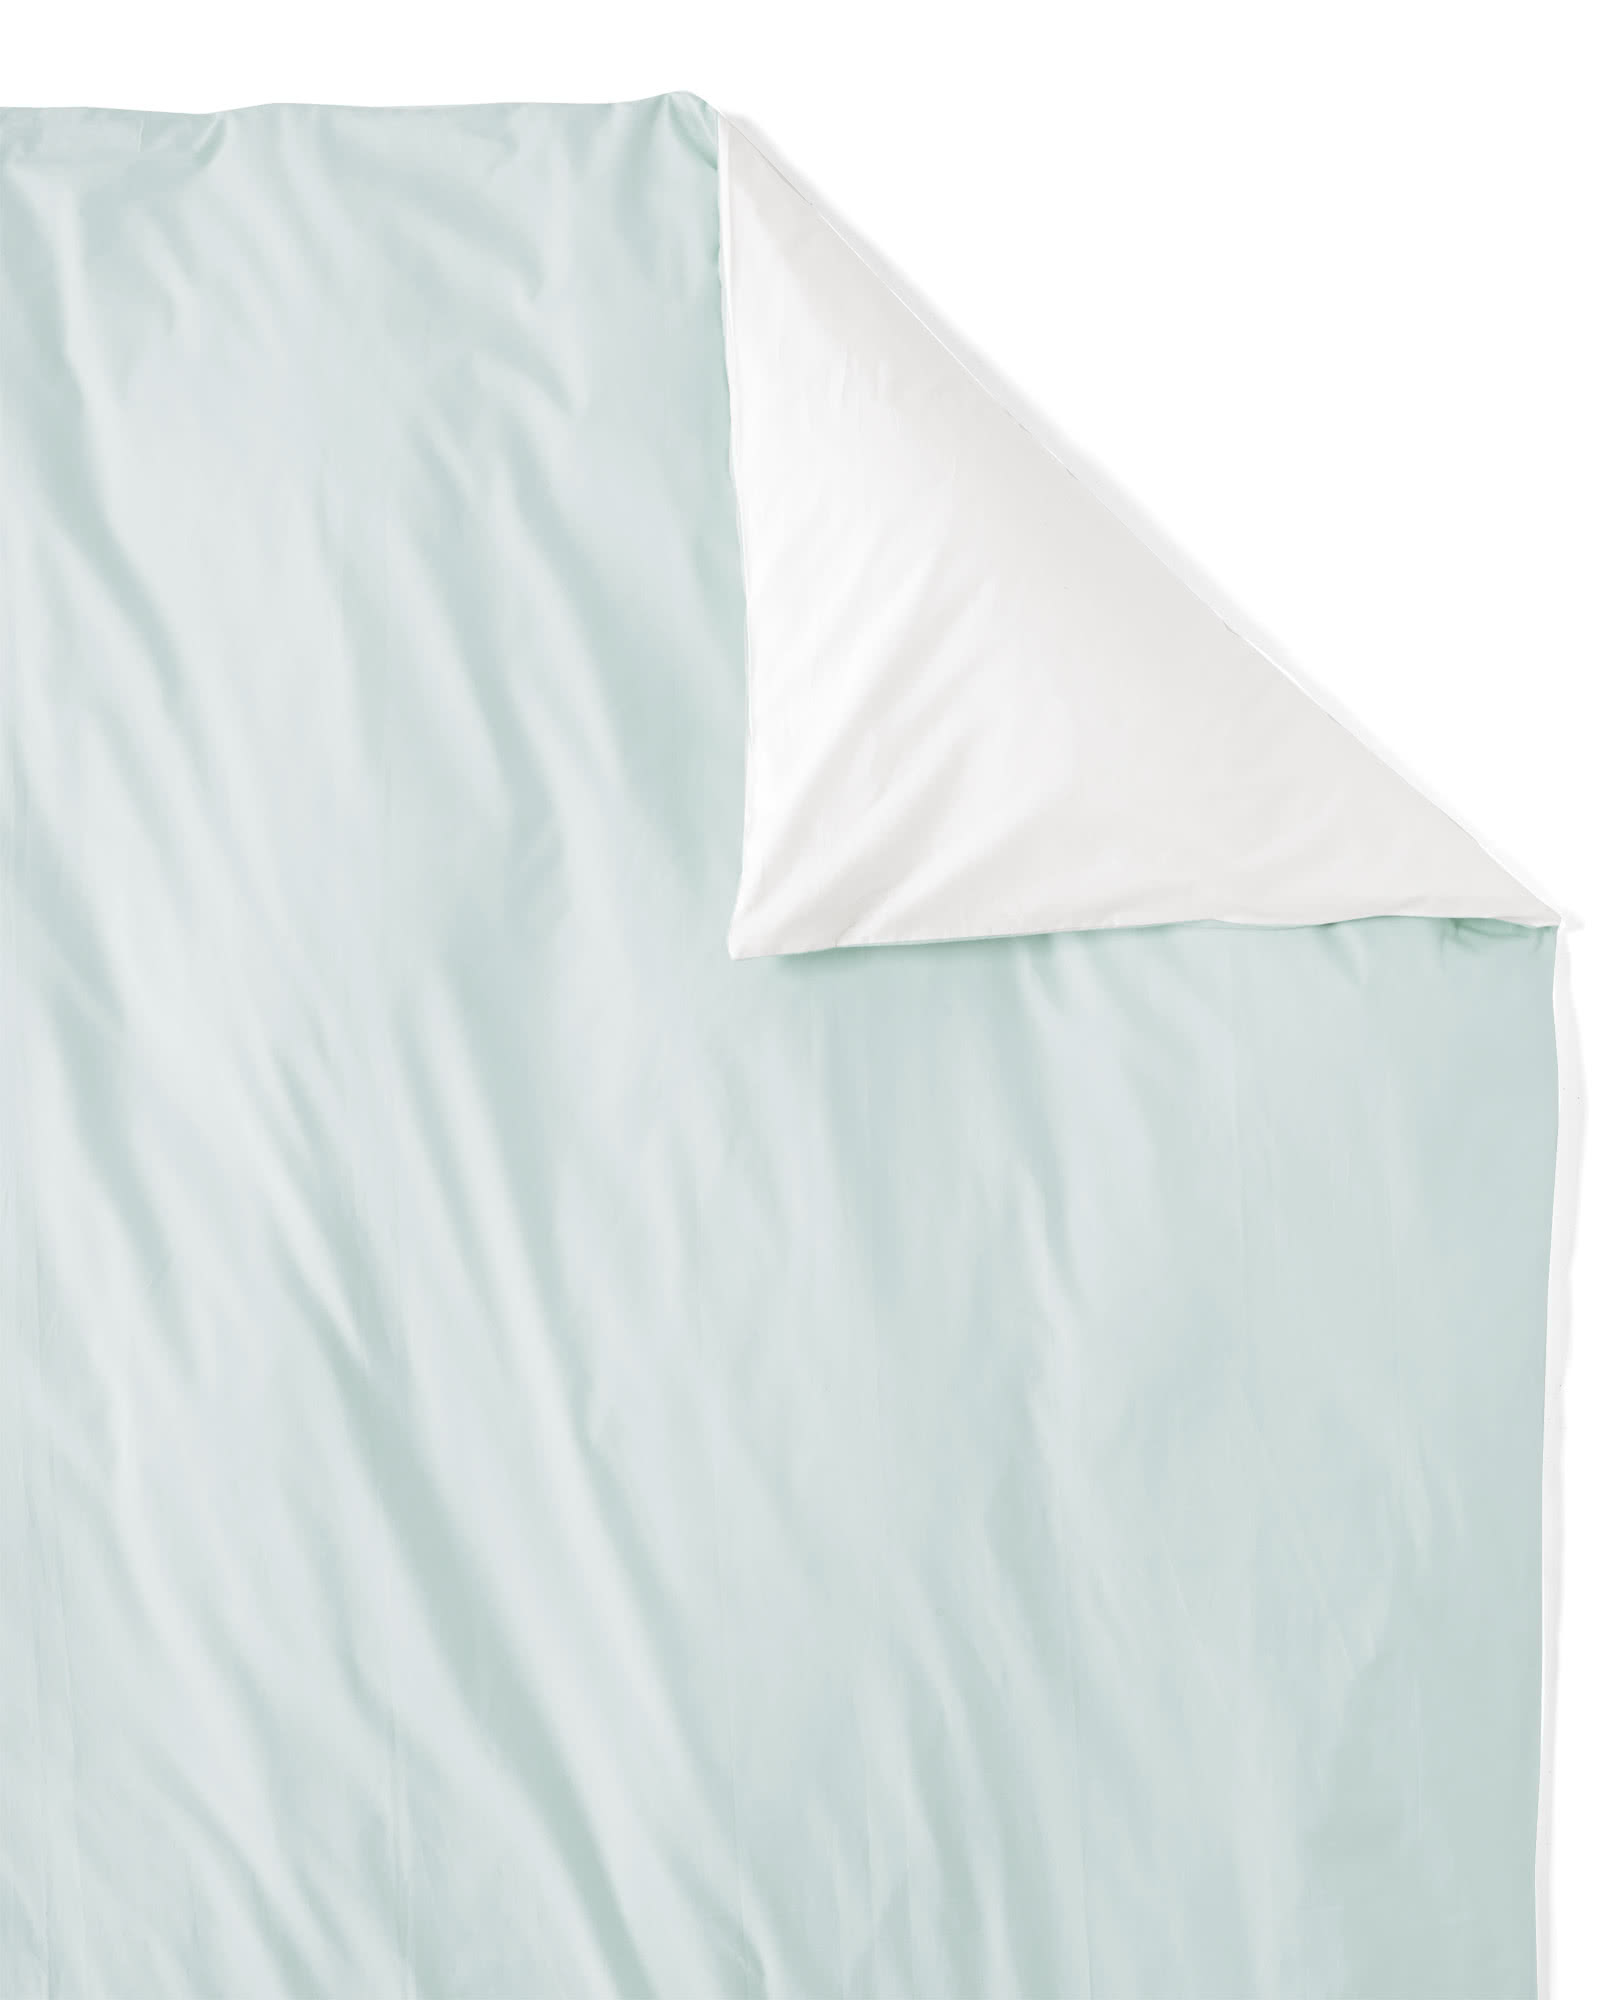 Washed Percale Duvet Cover